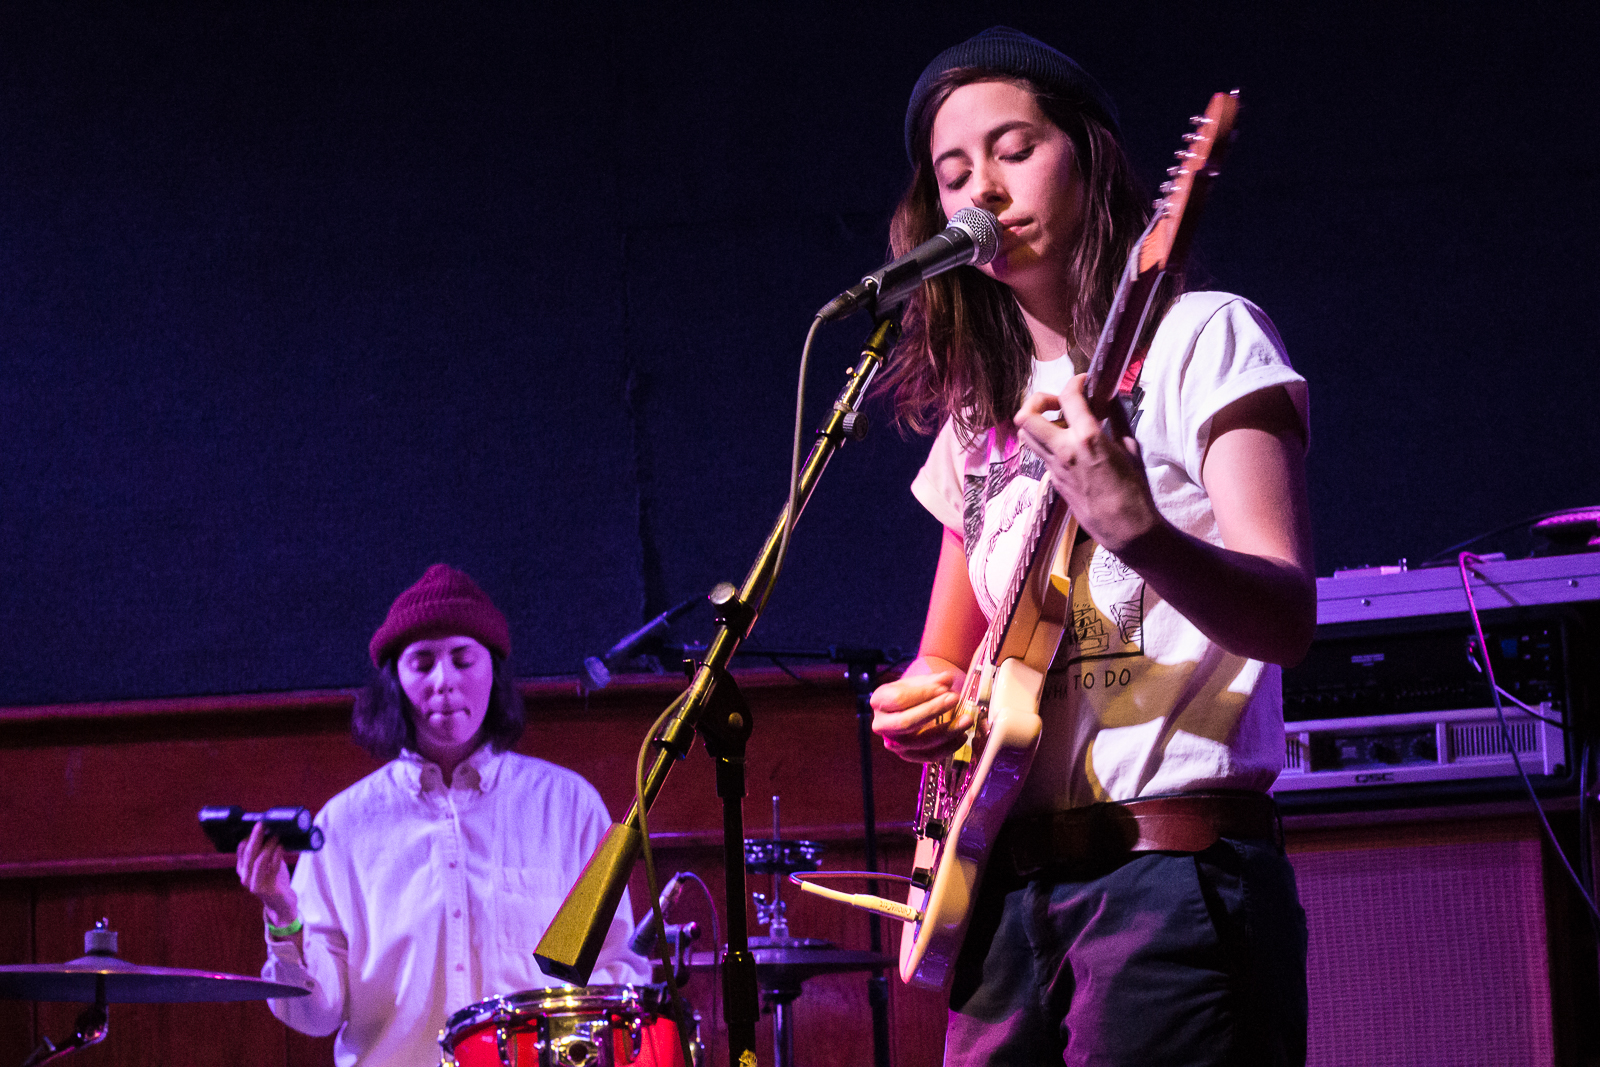 datestuff13 Chicago duo Date Stuff hole up at basement dive Punch House for a performance of Long Con: Watch